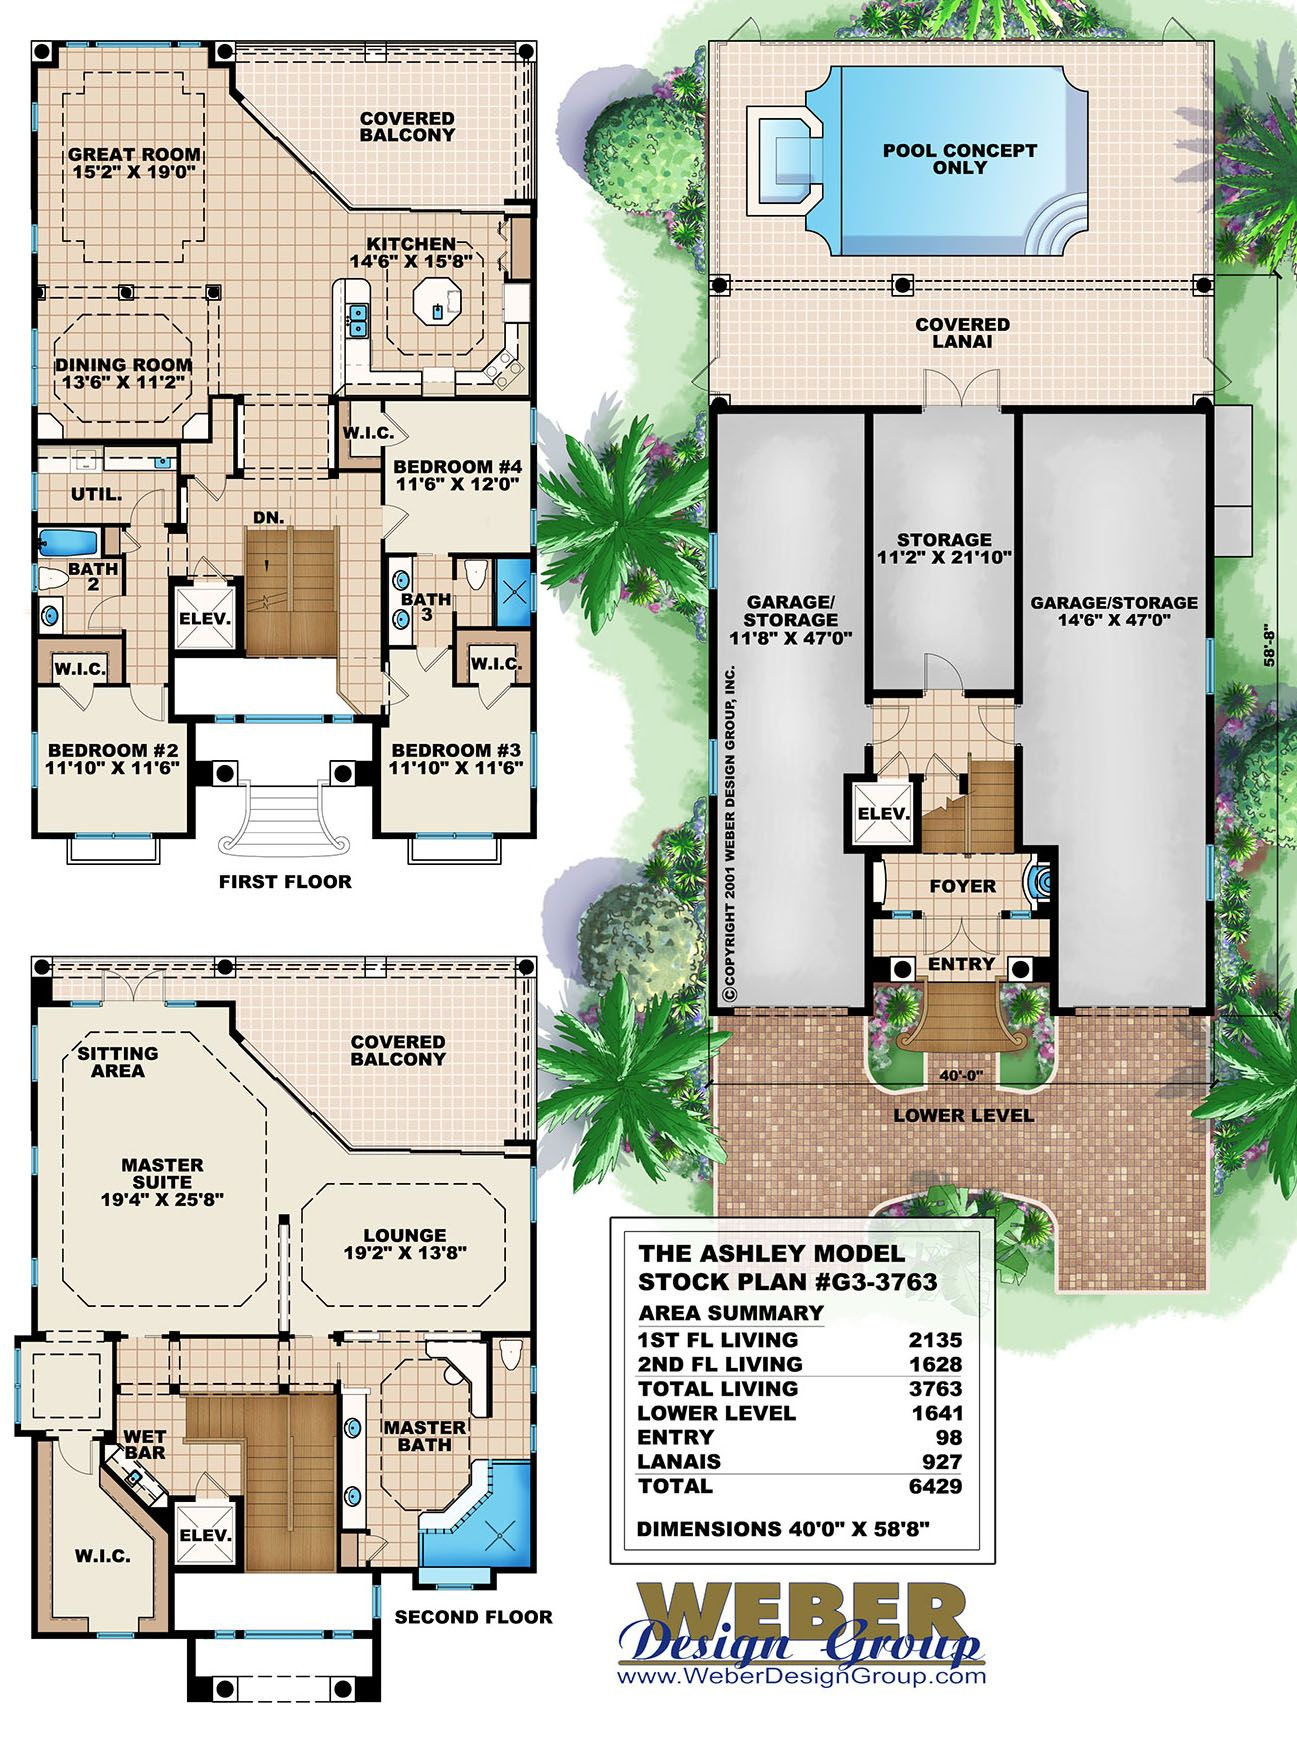 Tuscan House Plans Mediterranean Tuscan Style Home Floor Plans Coastal House Plans Beach House Plans Mediterranean House Plans